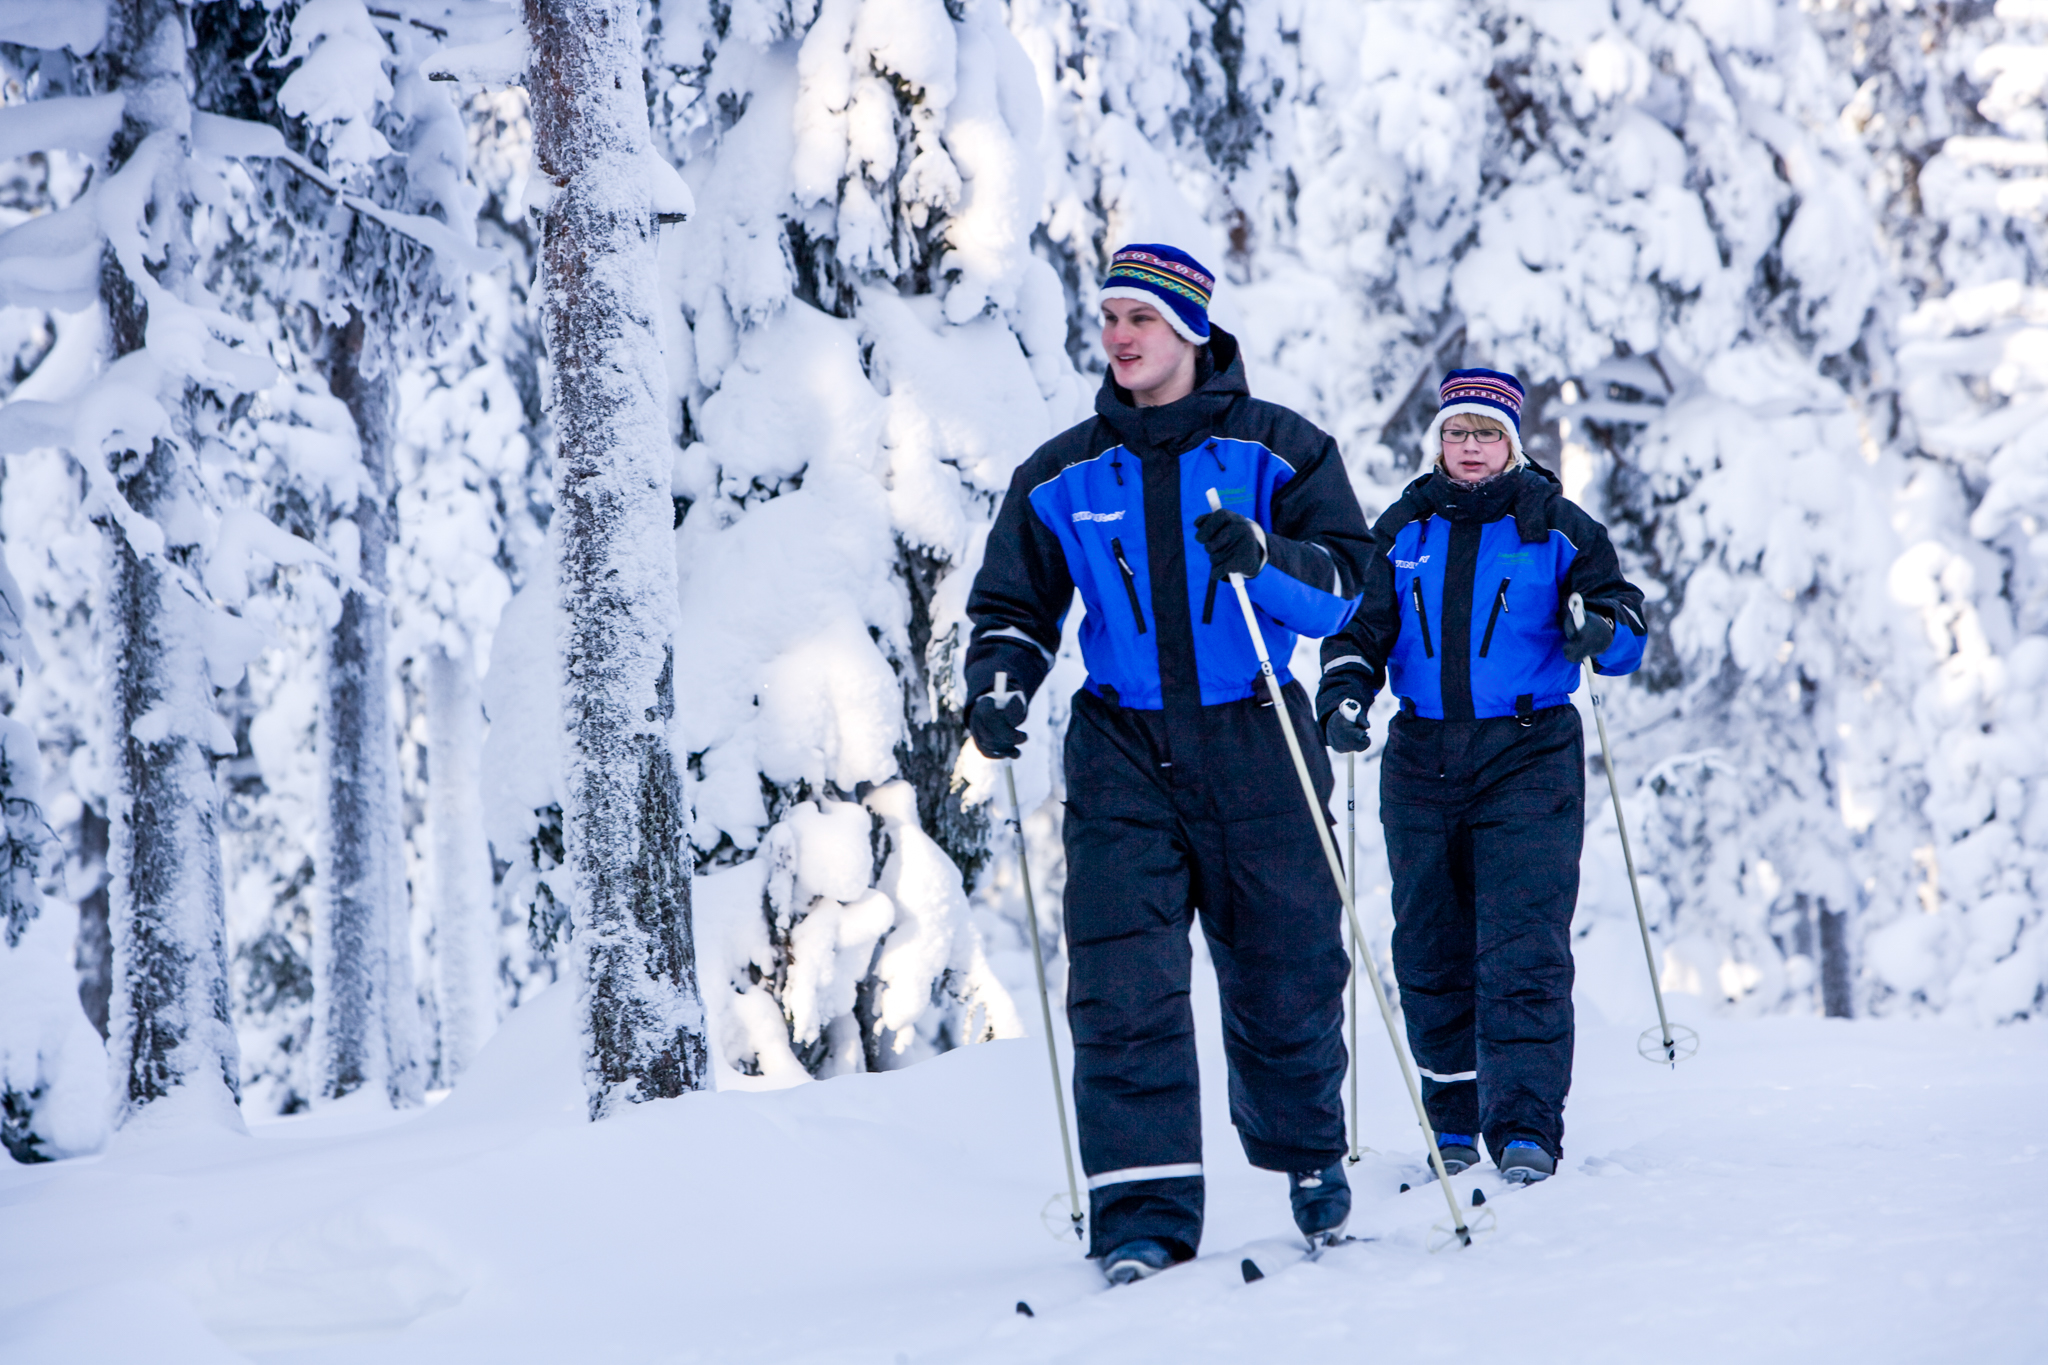 two people during cross country skiing trip